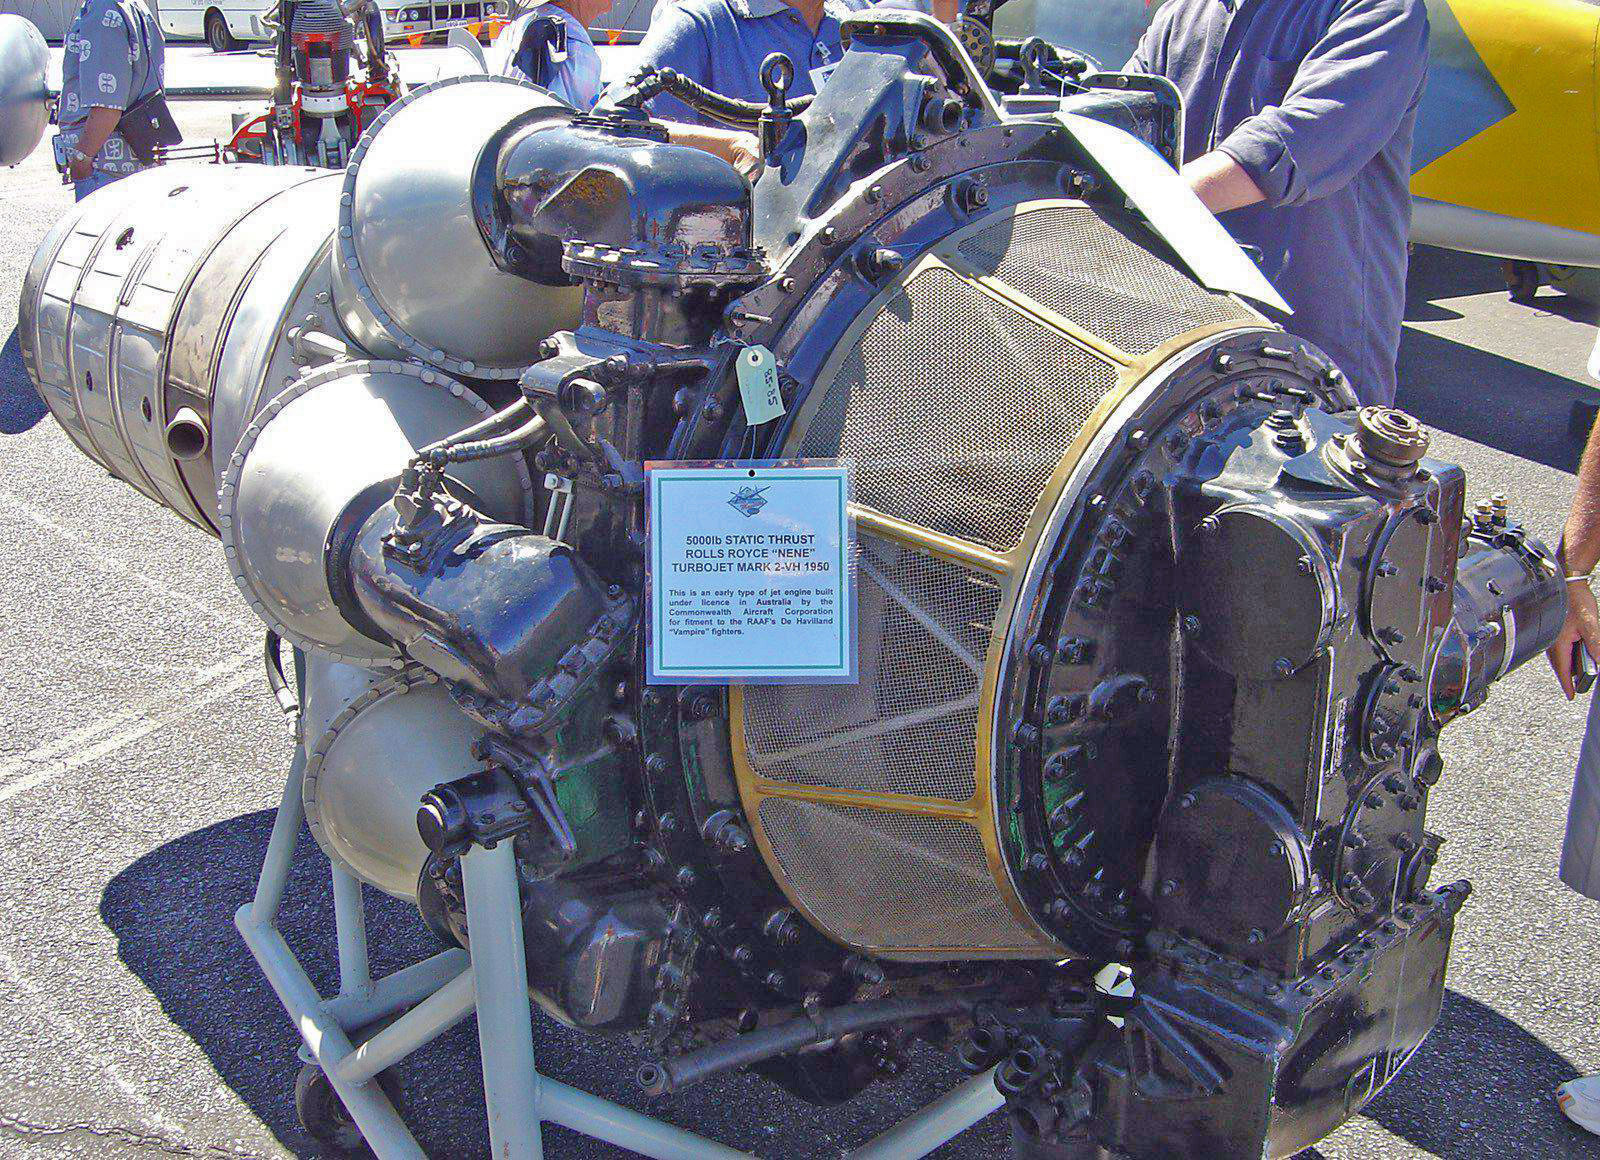 History of the jet engine